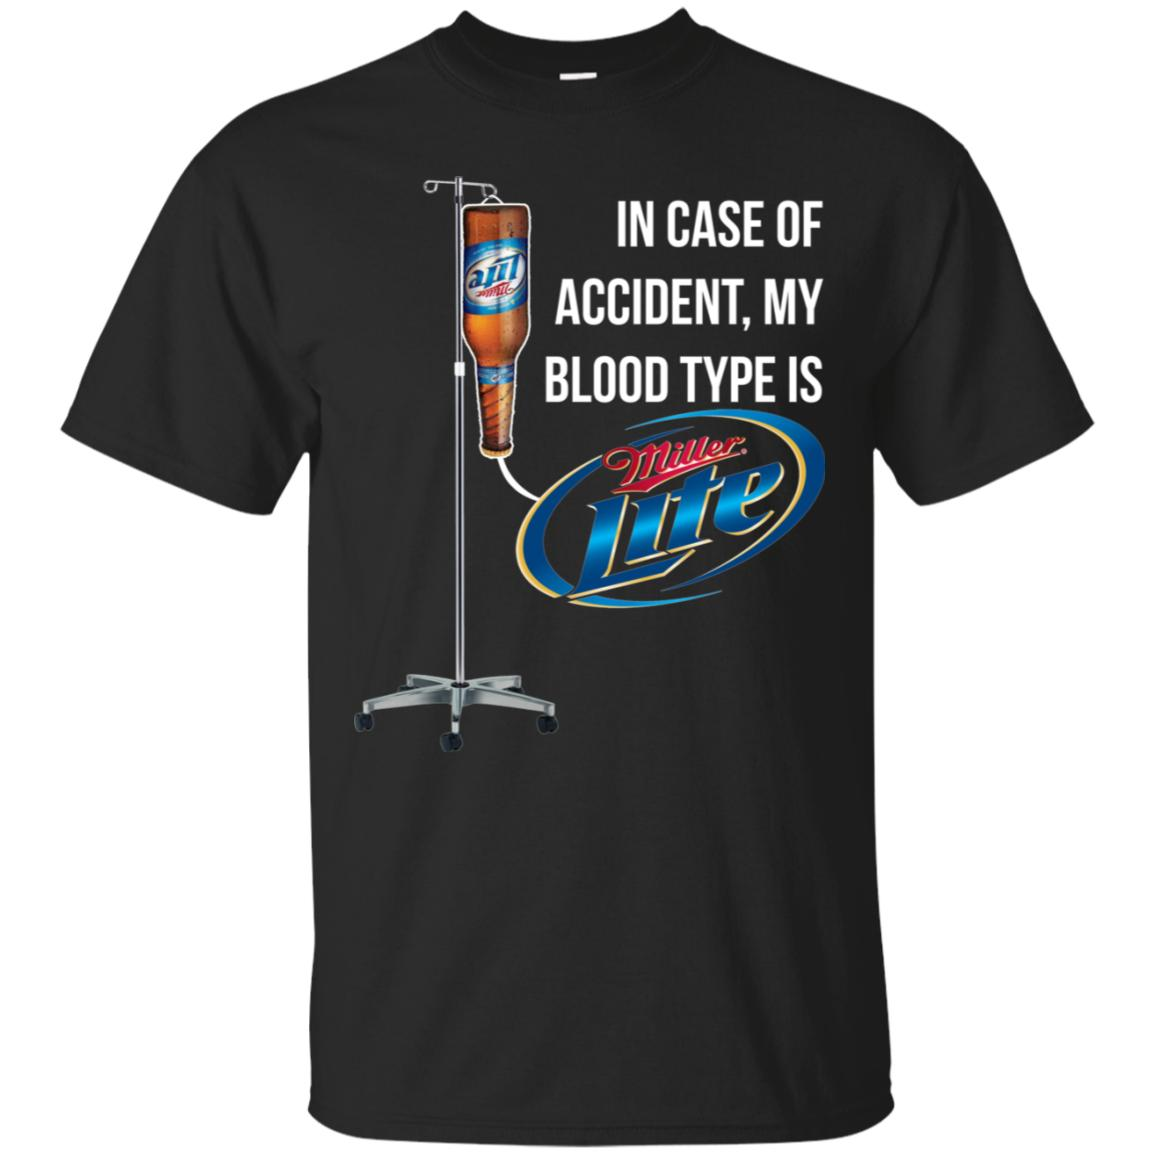 In Case of Accident My Blood Type Is Miller Lite T-Shirt